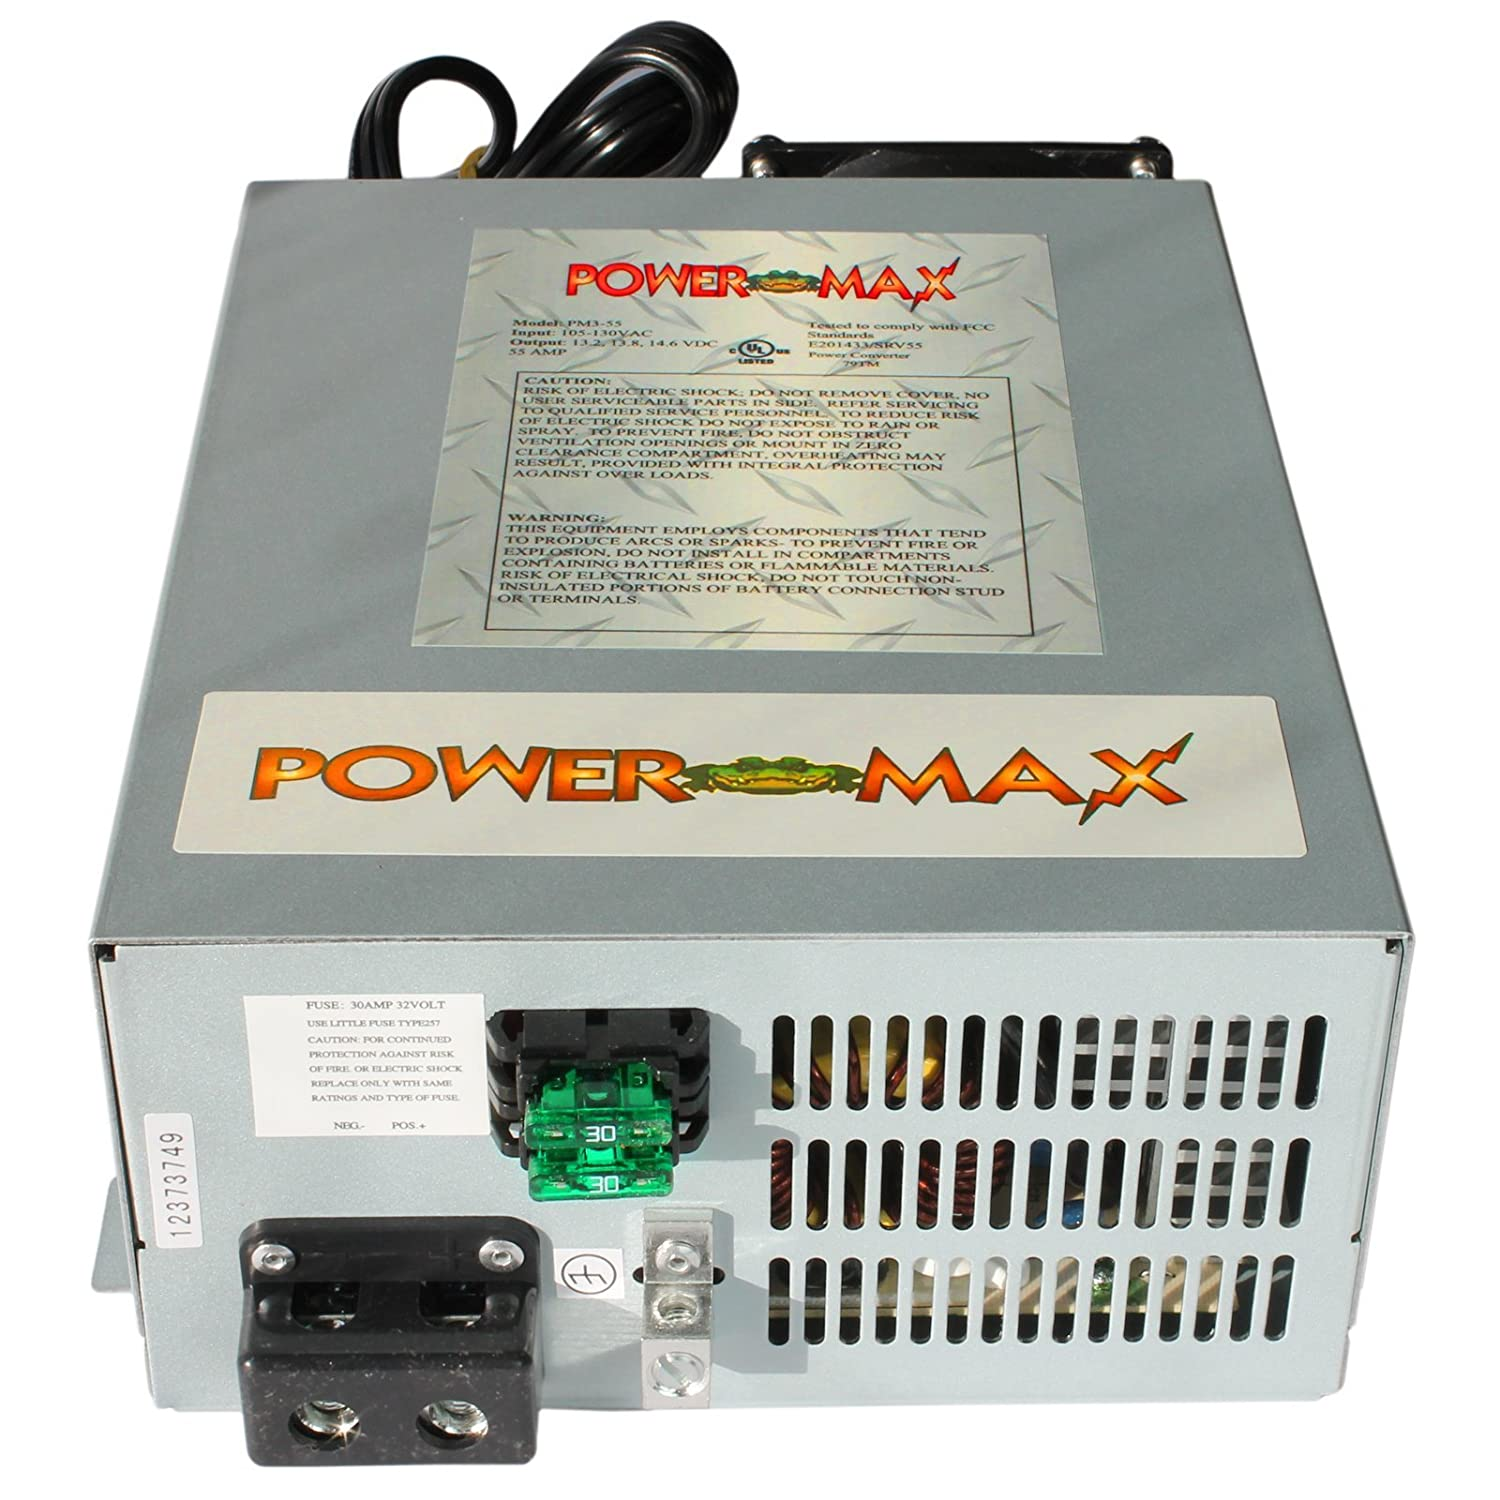 Powermax 110 Volt Ac To 12 Dc Power Supply Colt 60 Amp Fuse Box Converter Charger For Rv Pm3 45 Electronics